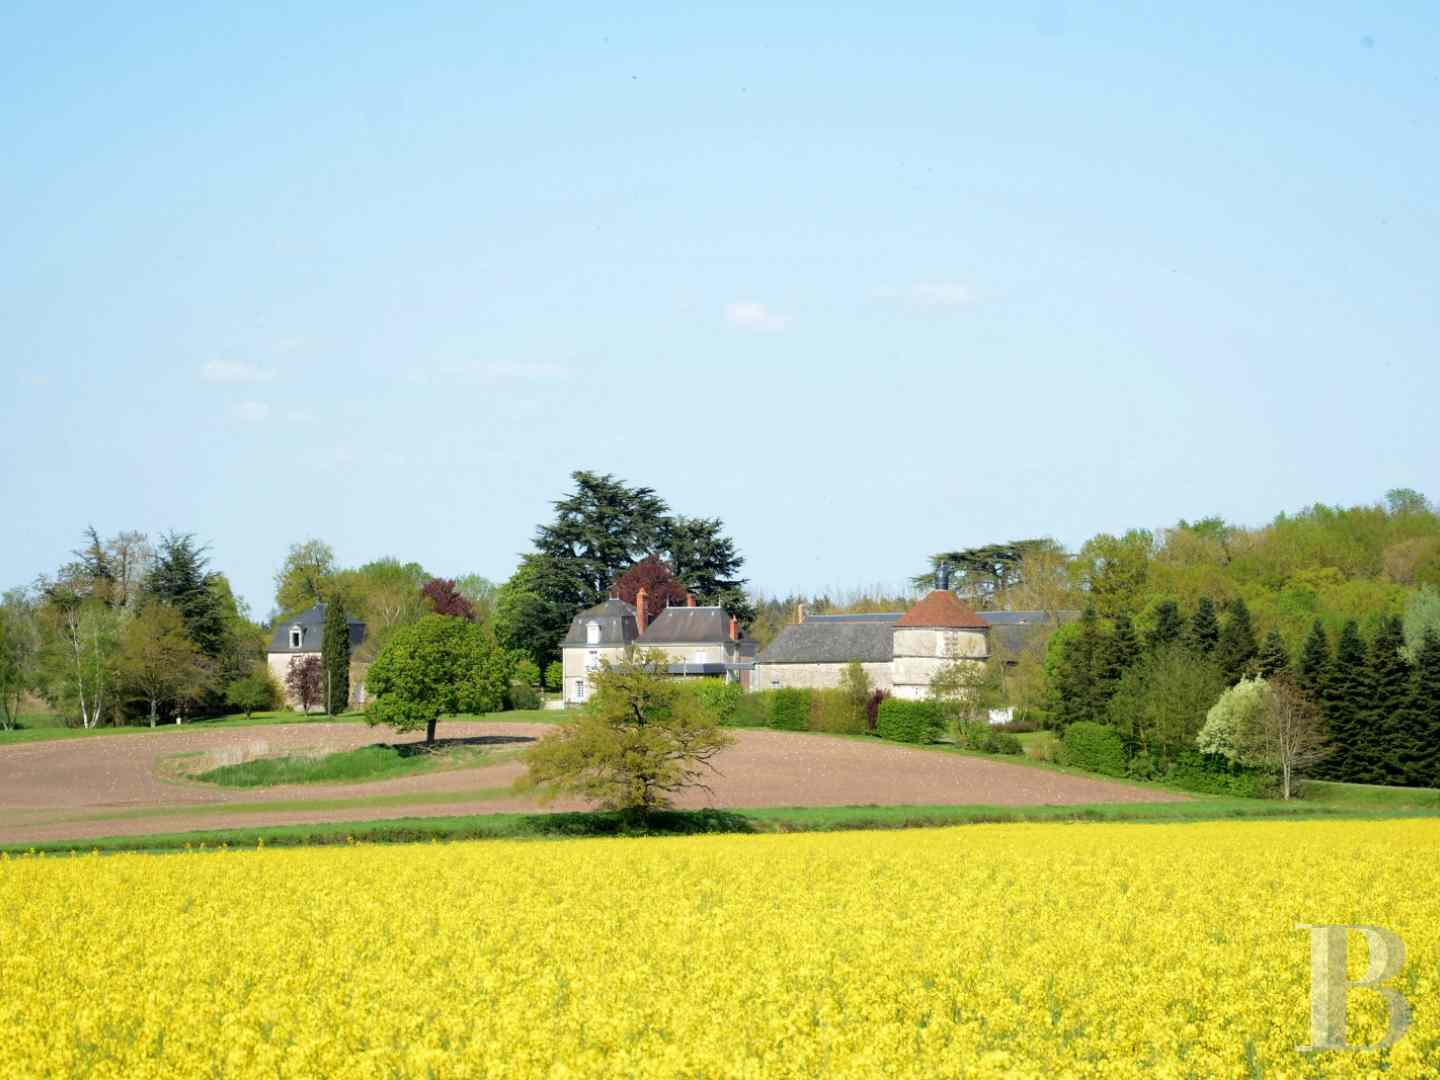 property for sale France center val de loire hunting grounds - 20 zoom